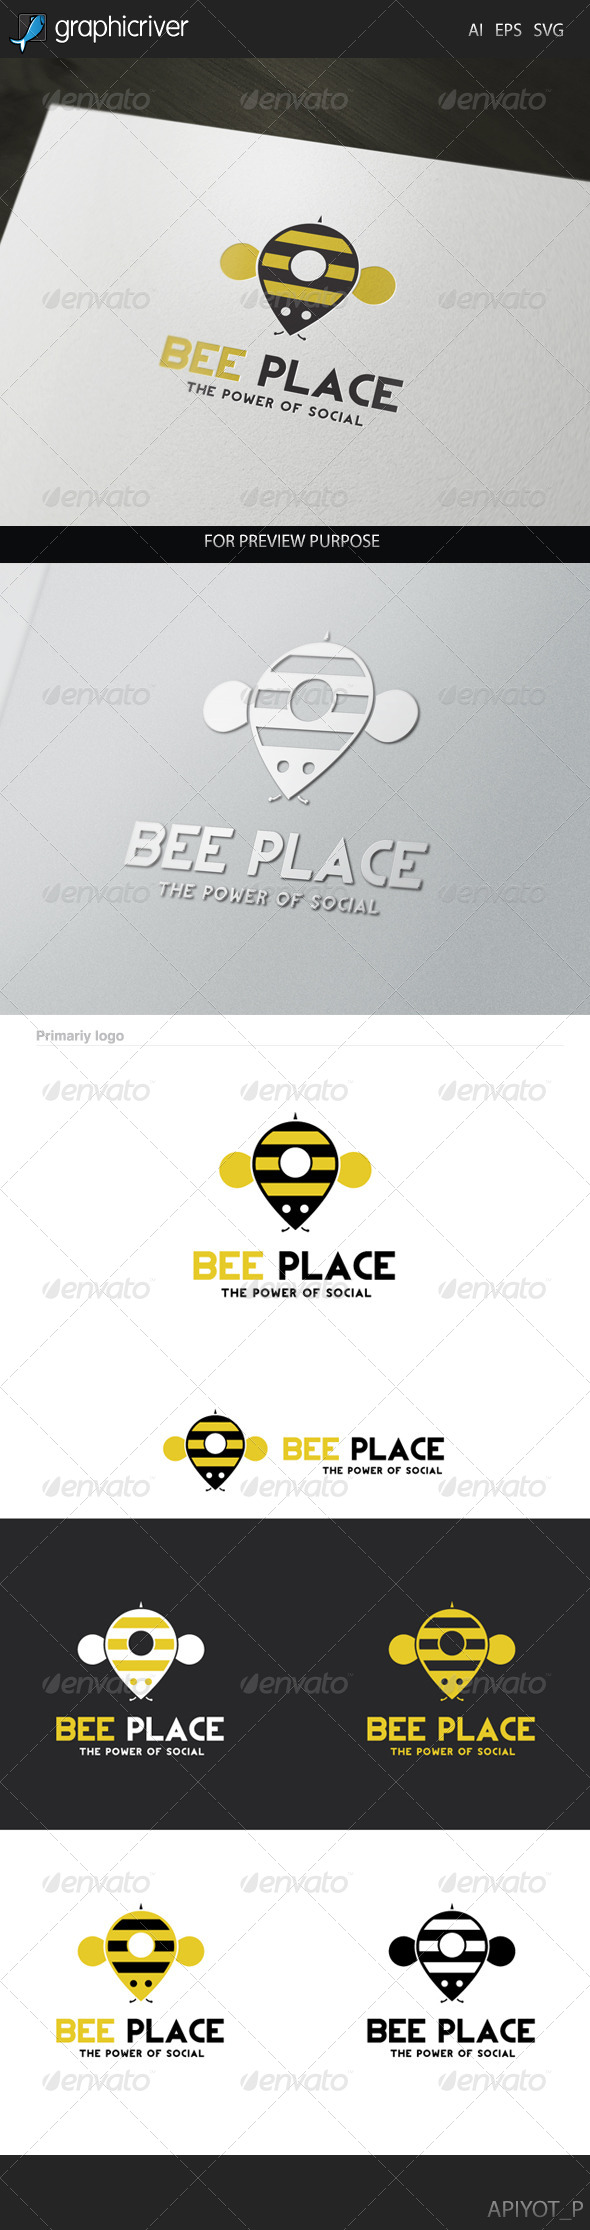 GraphicRiver Bee Place Logo 8281058